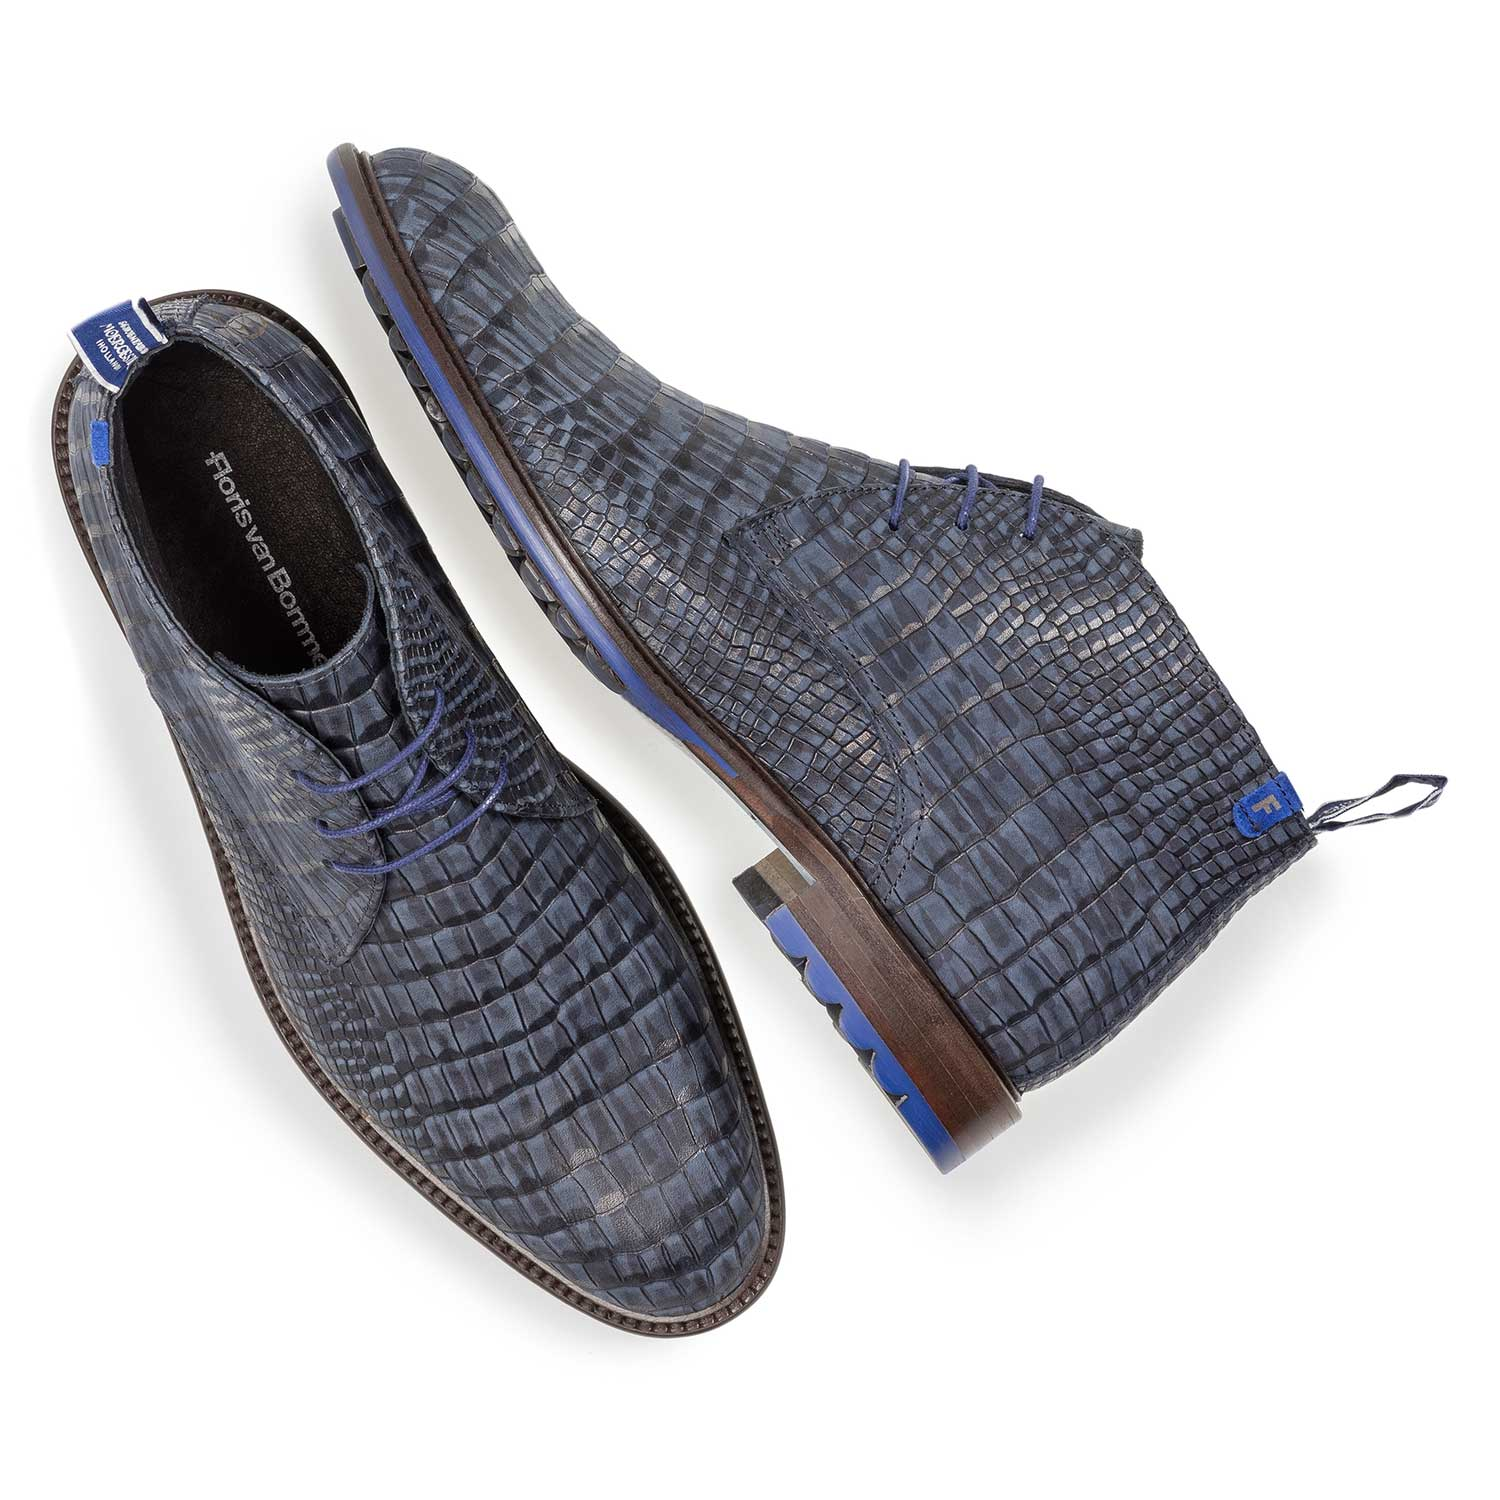 10203/22 - Dark blue nubuck leather lace shoe with croco print